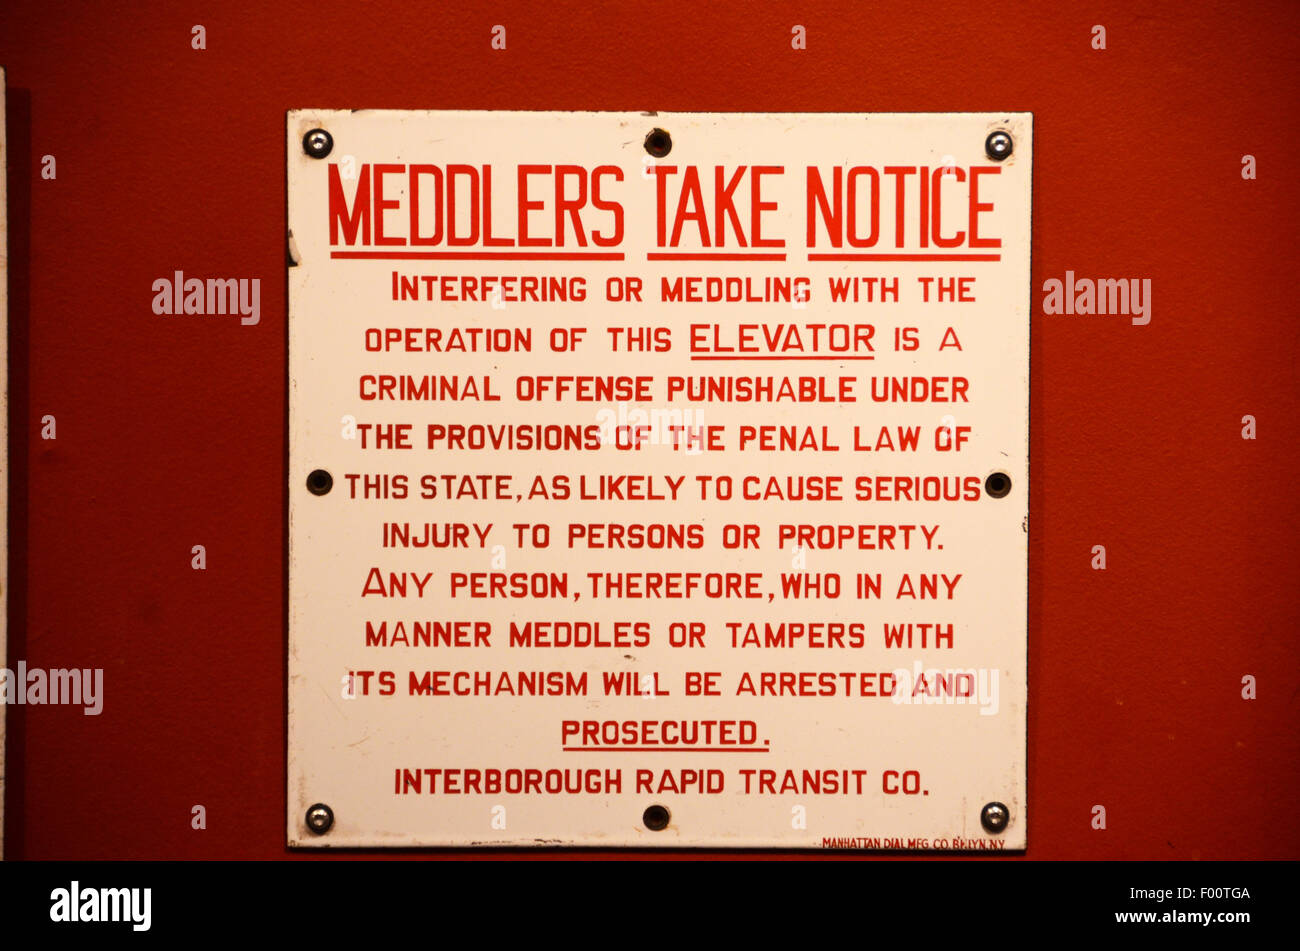 New York Transit Museum meddlers take notice sign red and